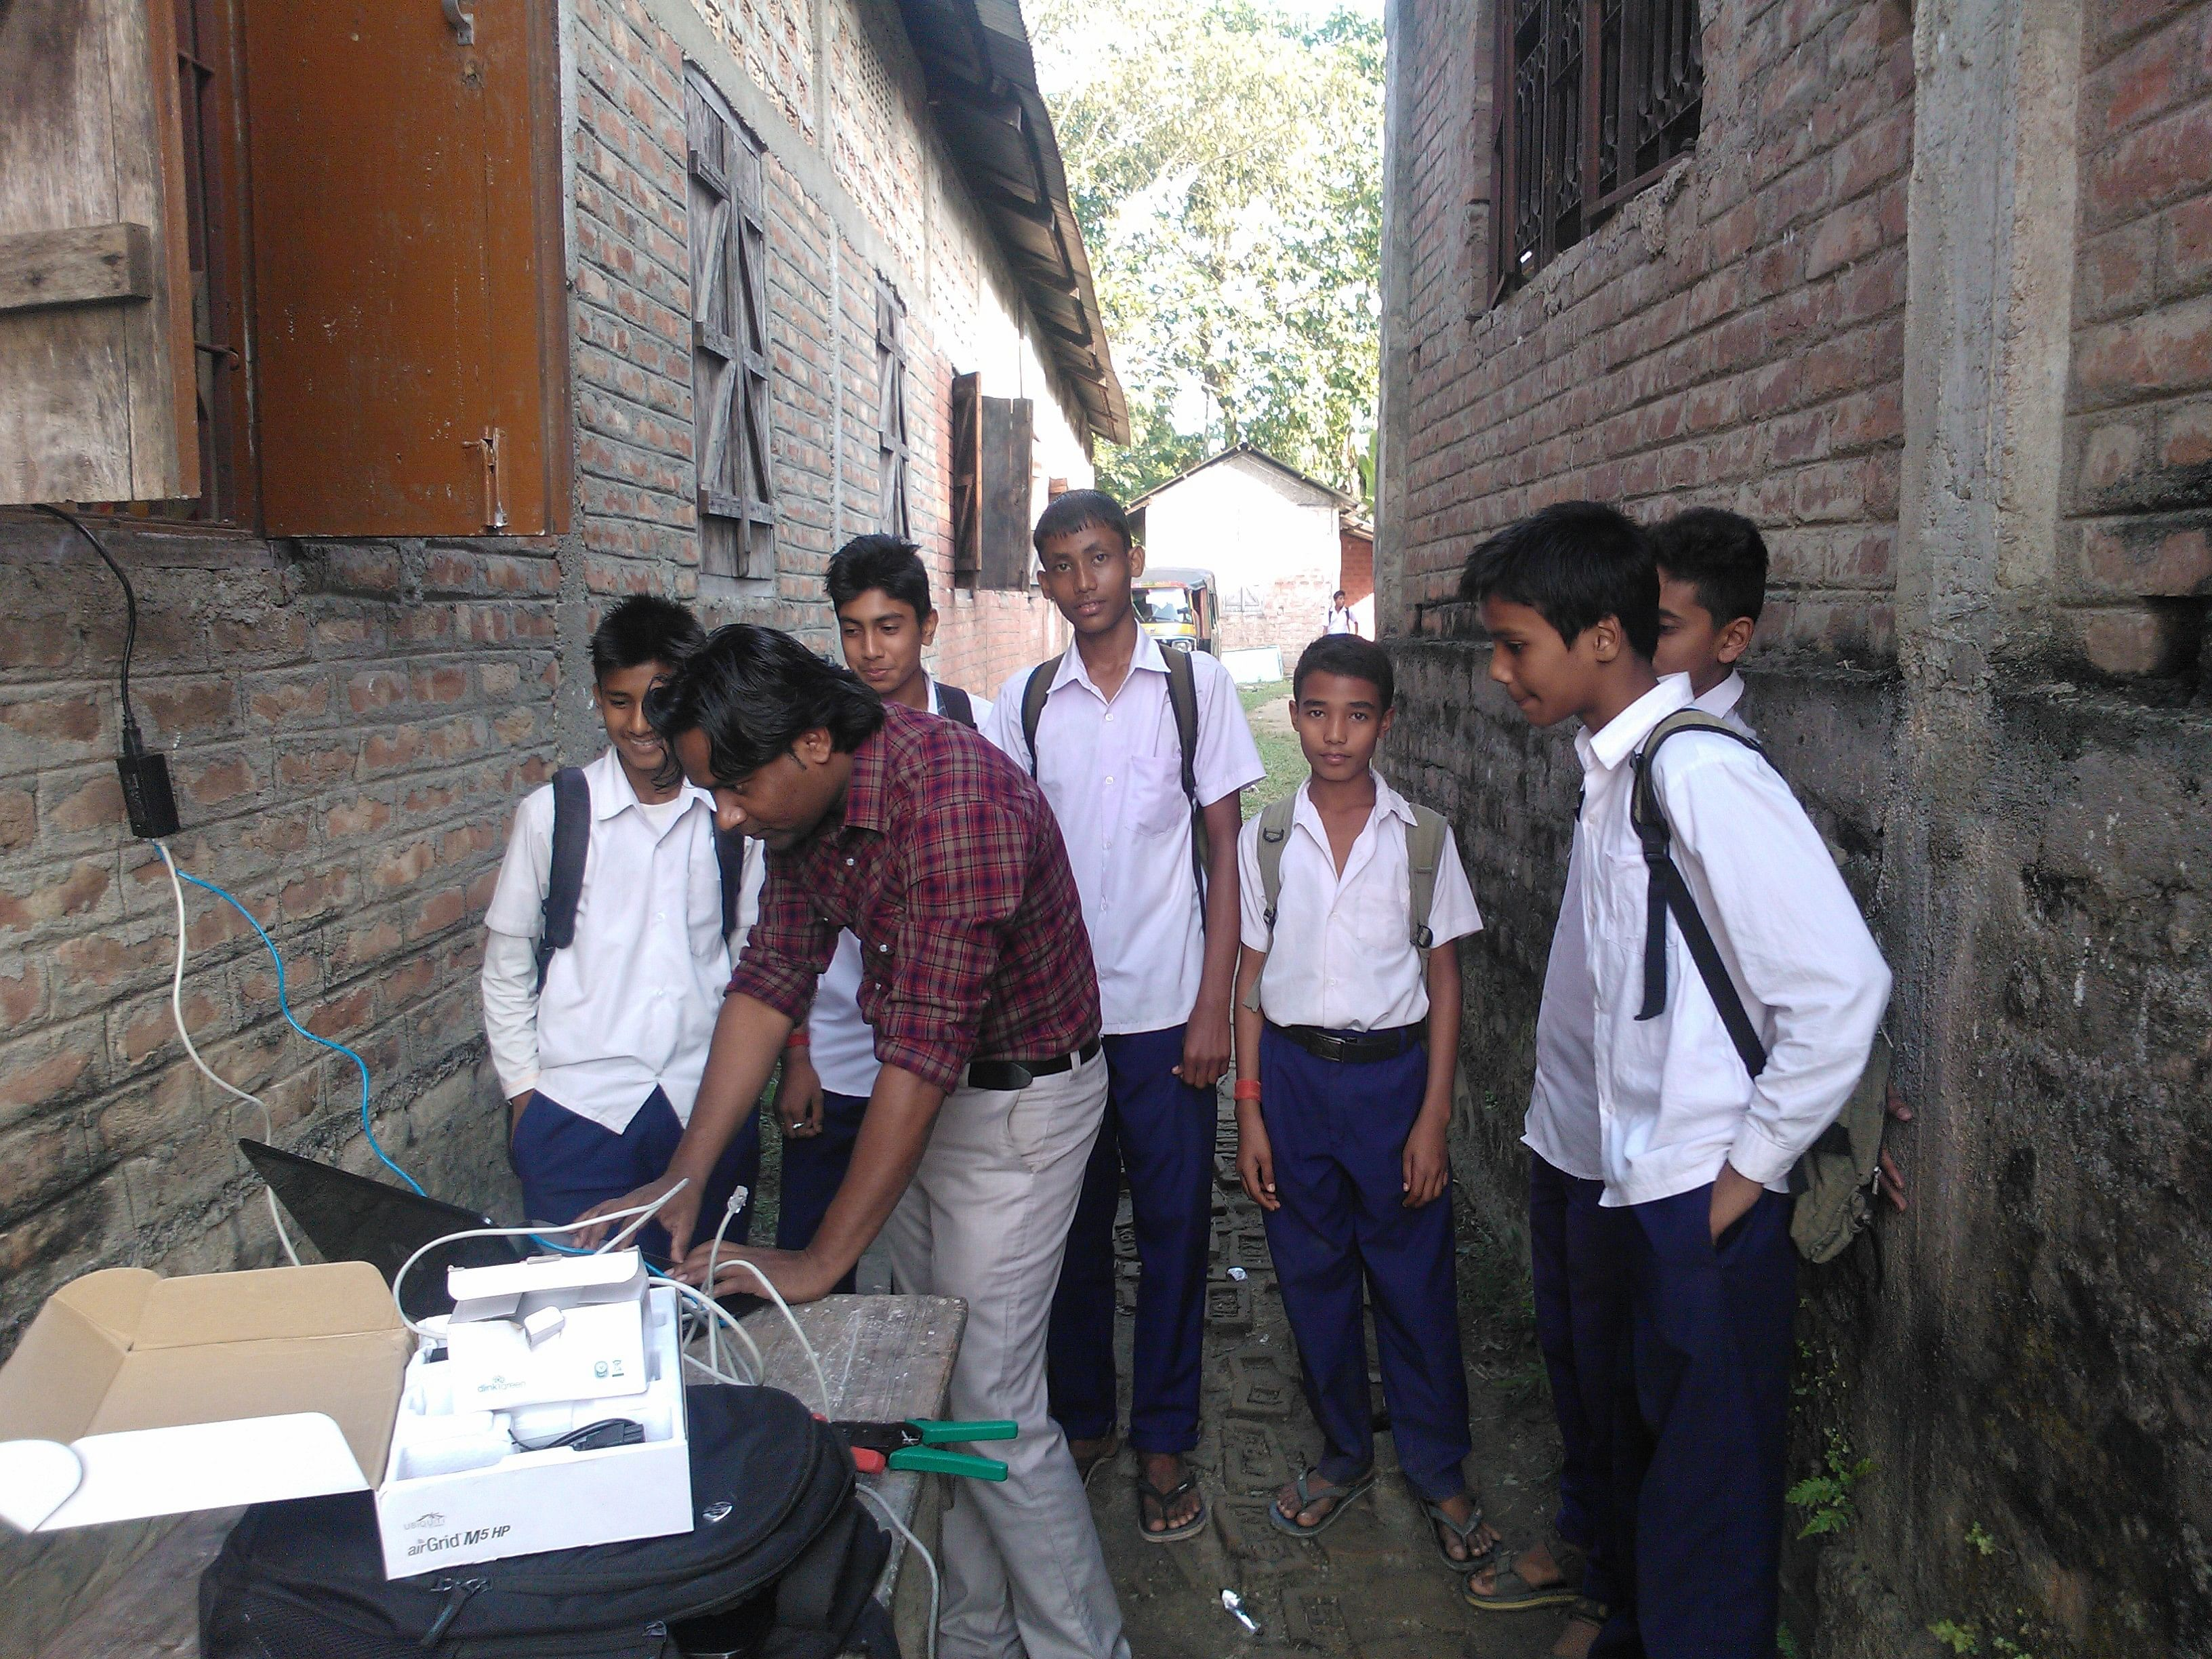 Mudassir teaching computing to rural school children